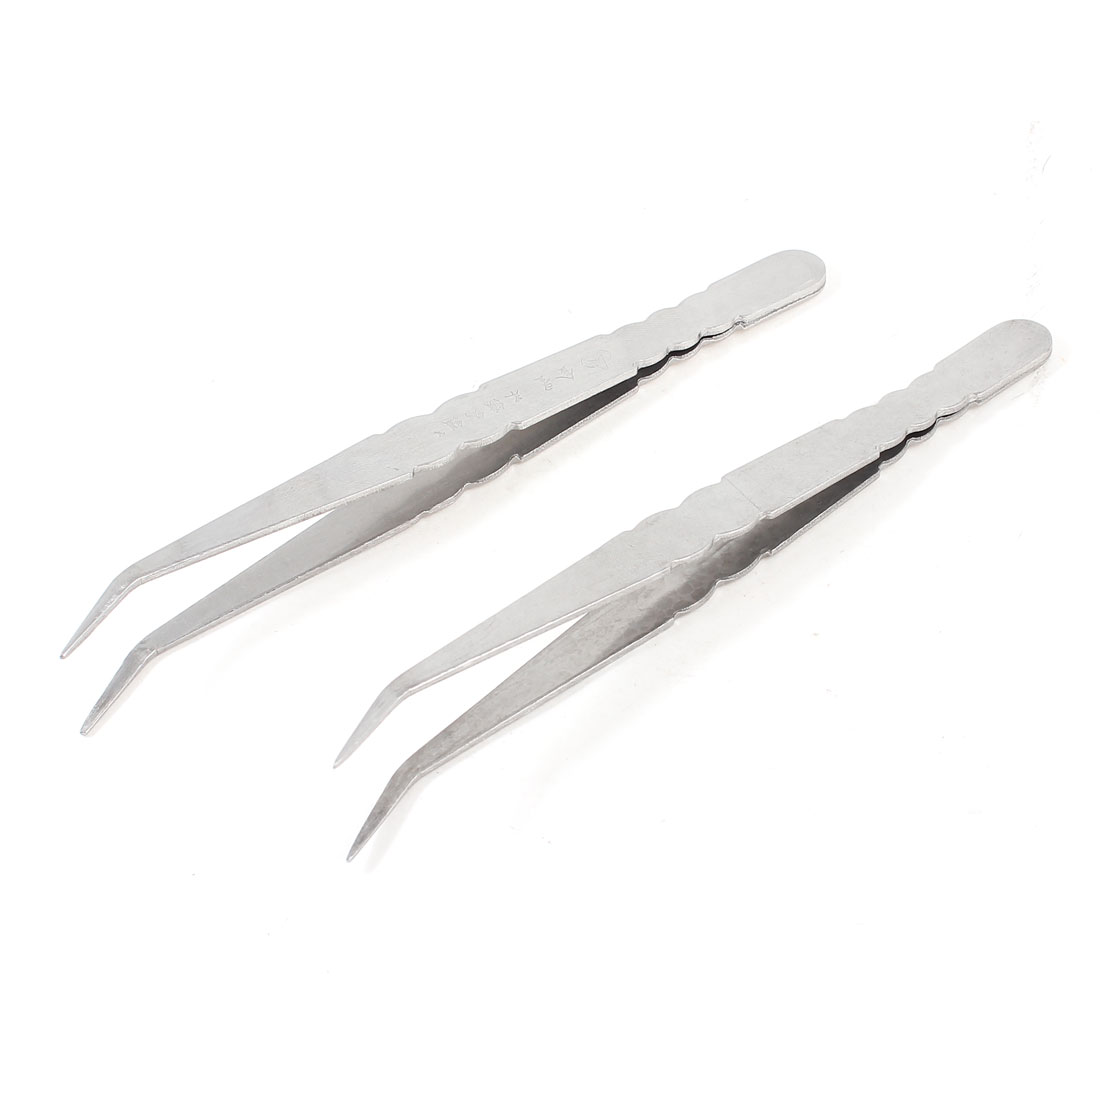 "2 Pieces Silver Tone Bent Curved Pointed Tip Tweezers Tool 6"" Long"